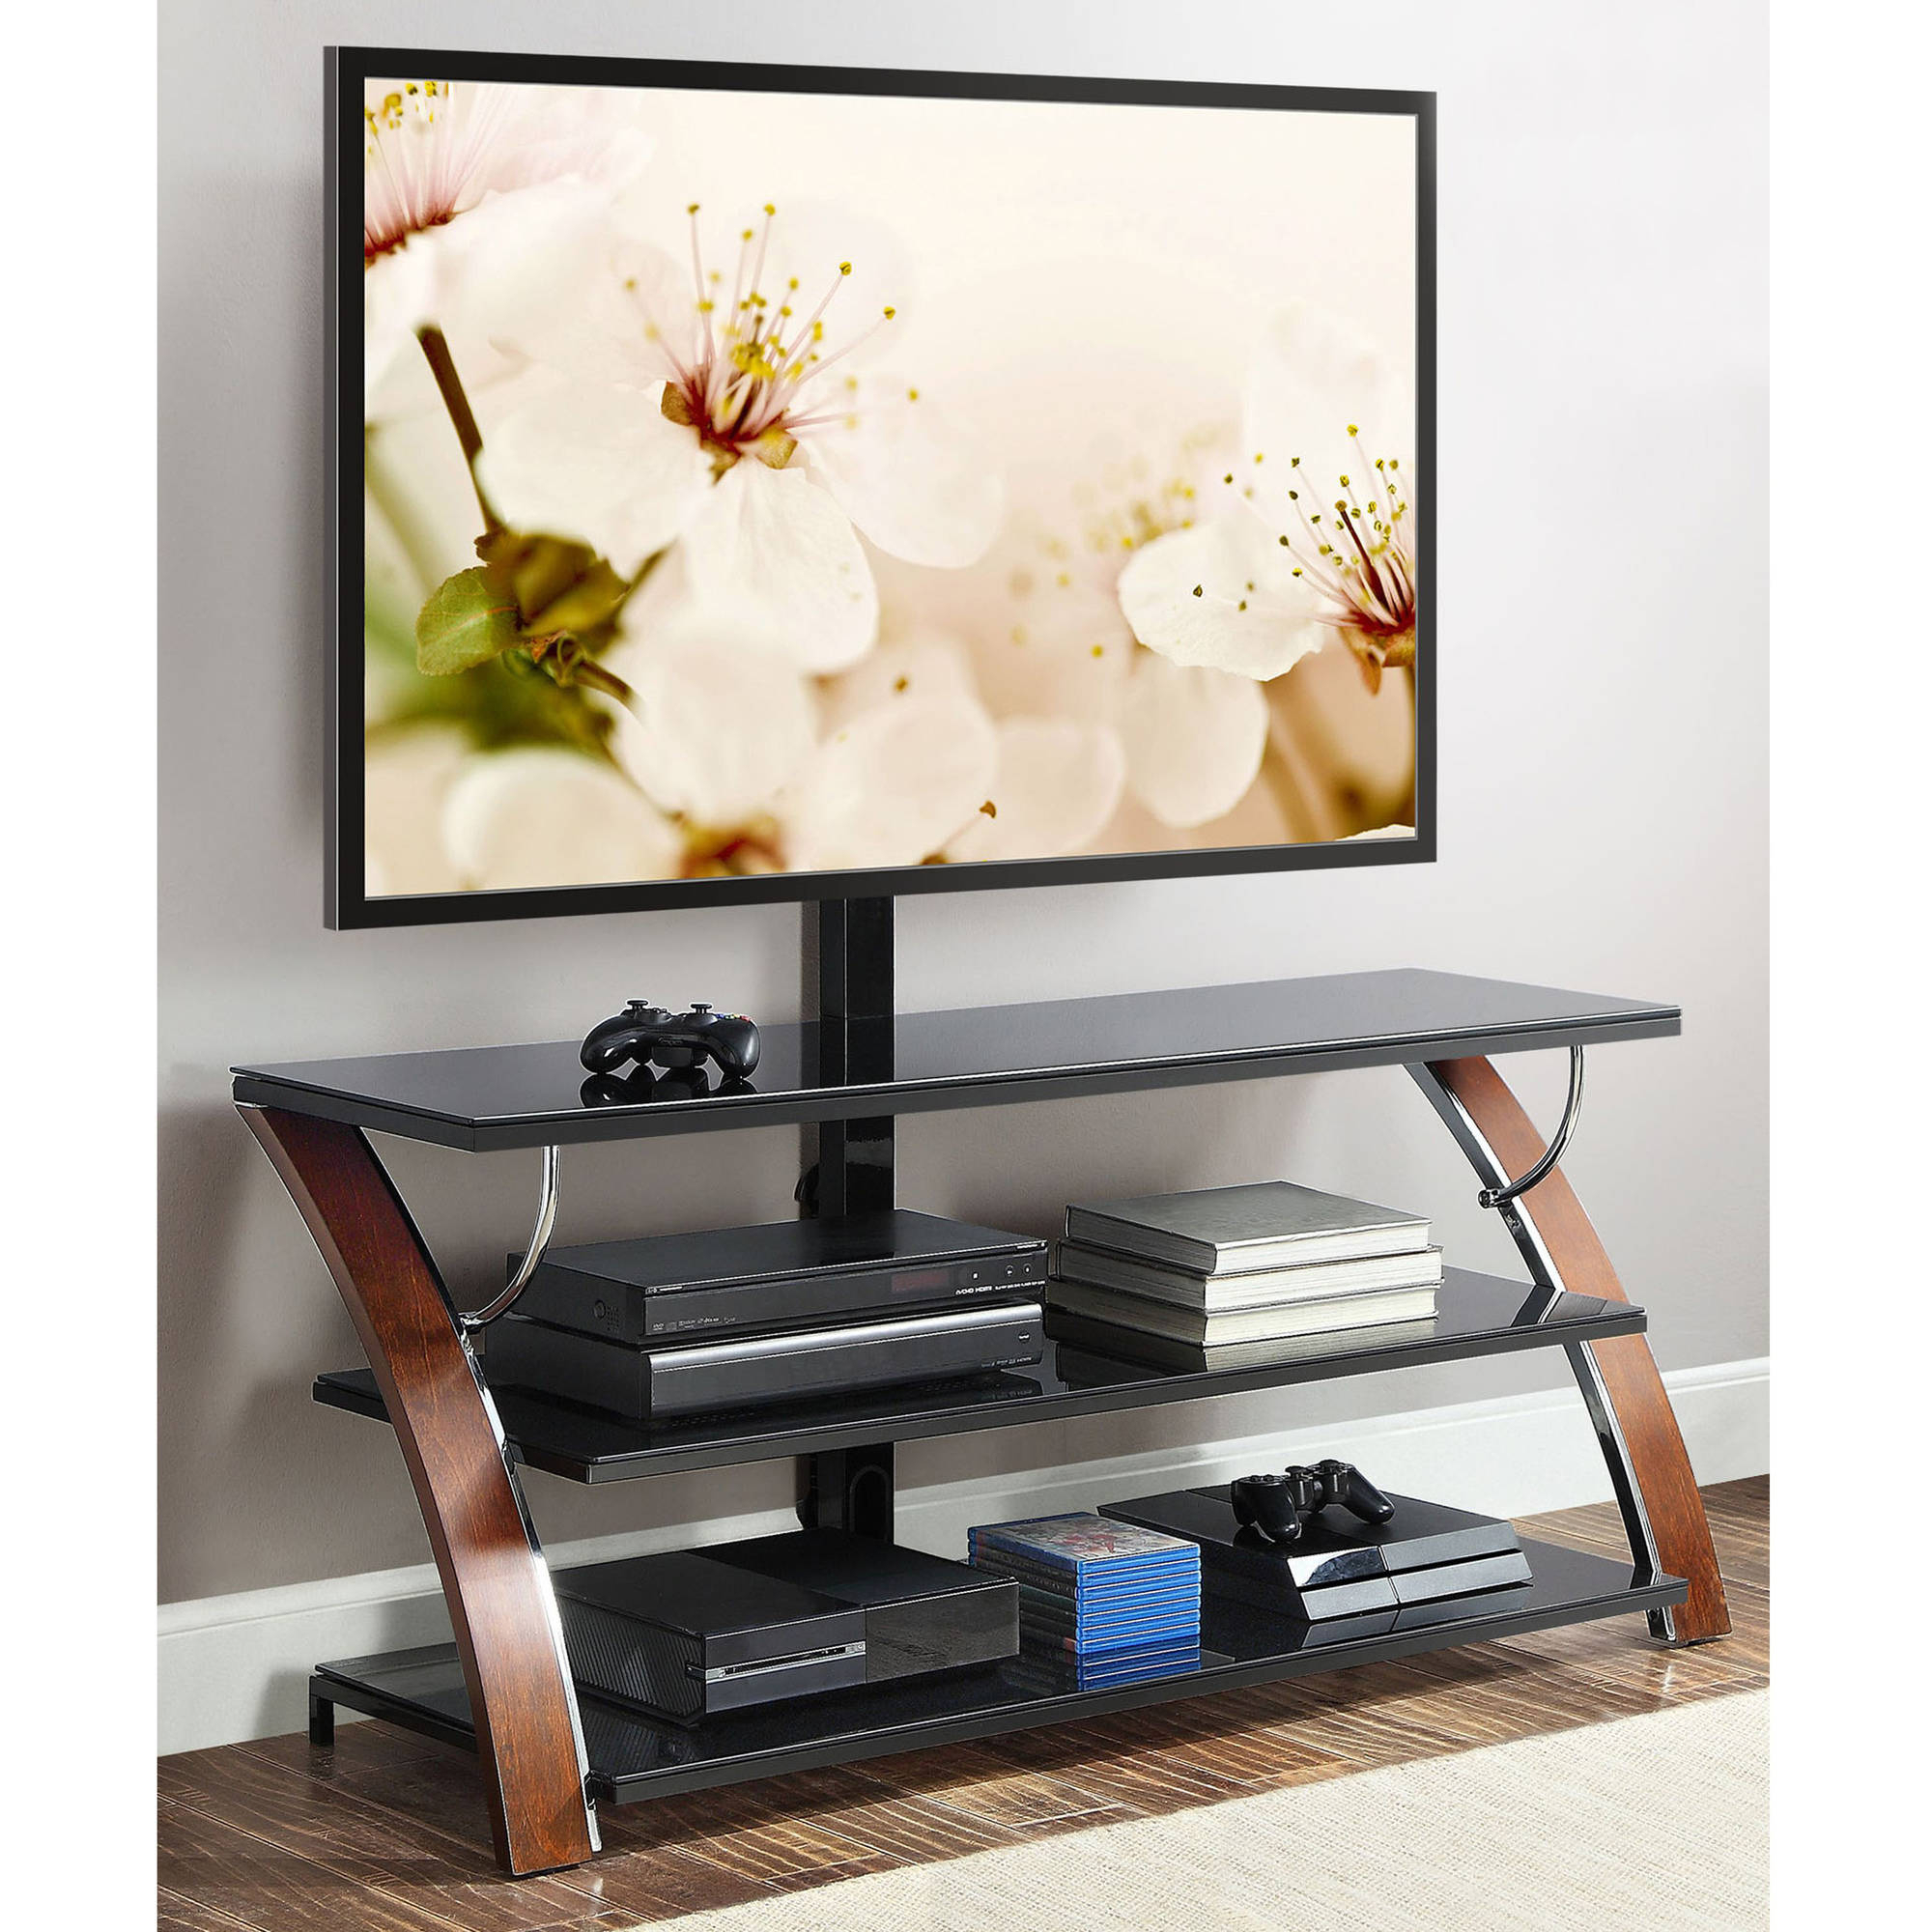 Jaxon 65 Inch Tv Stands In Well Known Whalen Payton Brown Cherry 3 In 1 Flat Panel Tv Stand For Tvs Up To (View 12 of 20)